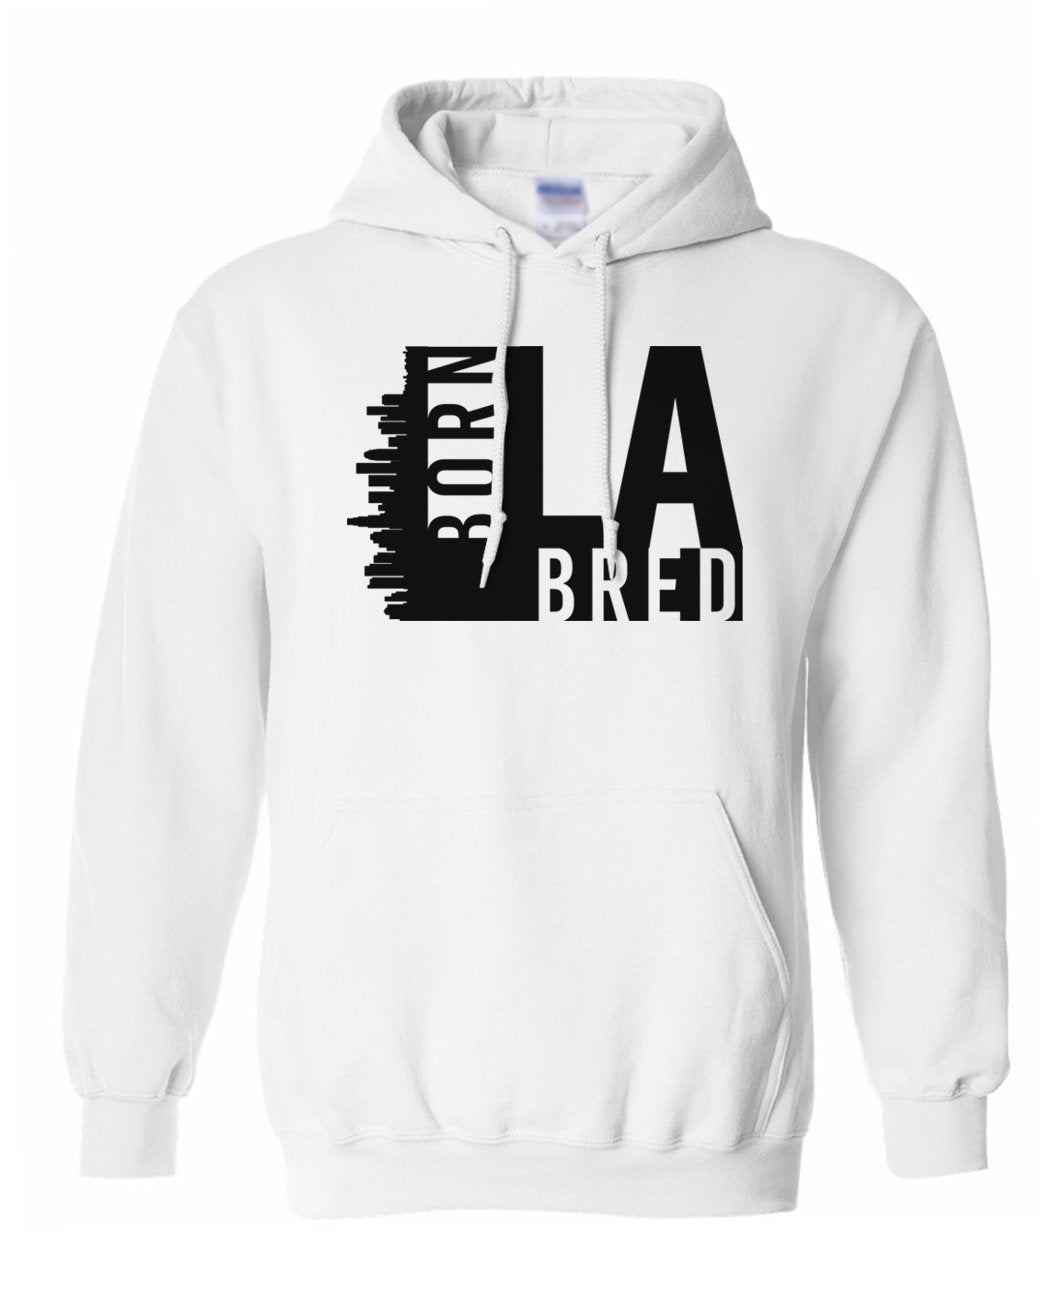 white Los Angeles born and bred hoodie